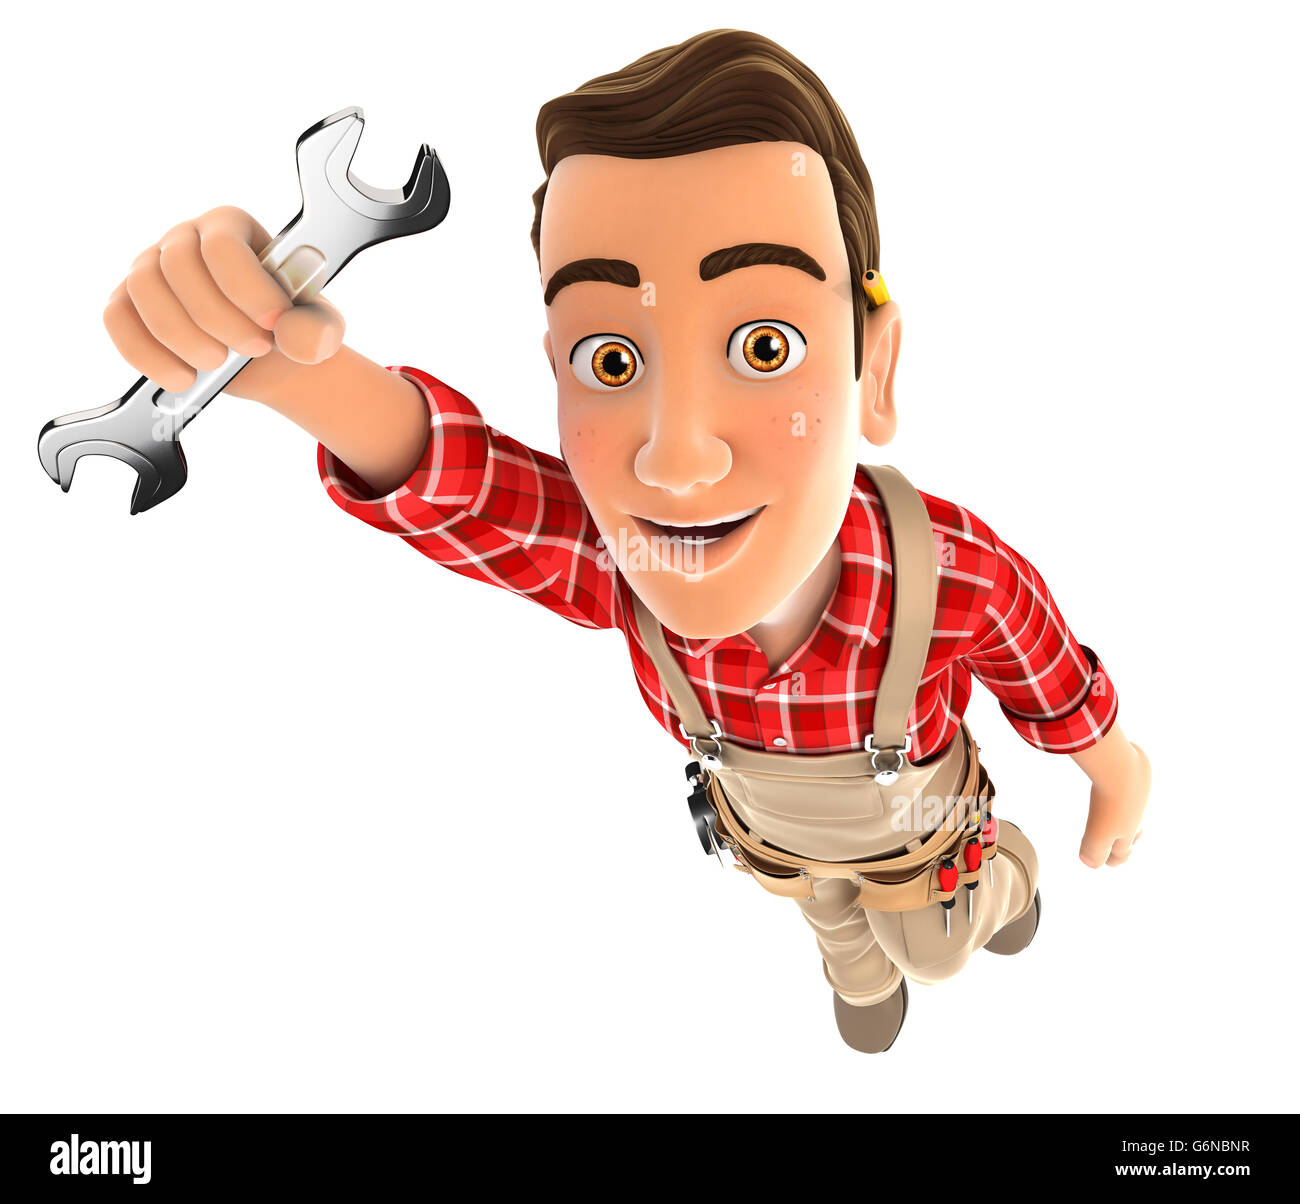 3d handyman flying and holding a wrench, illustration with isolated white background Stock Photo